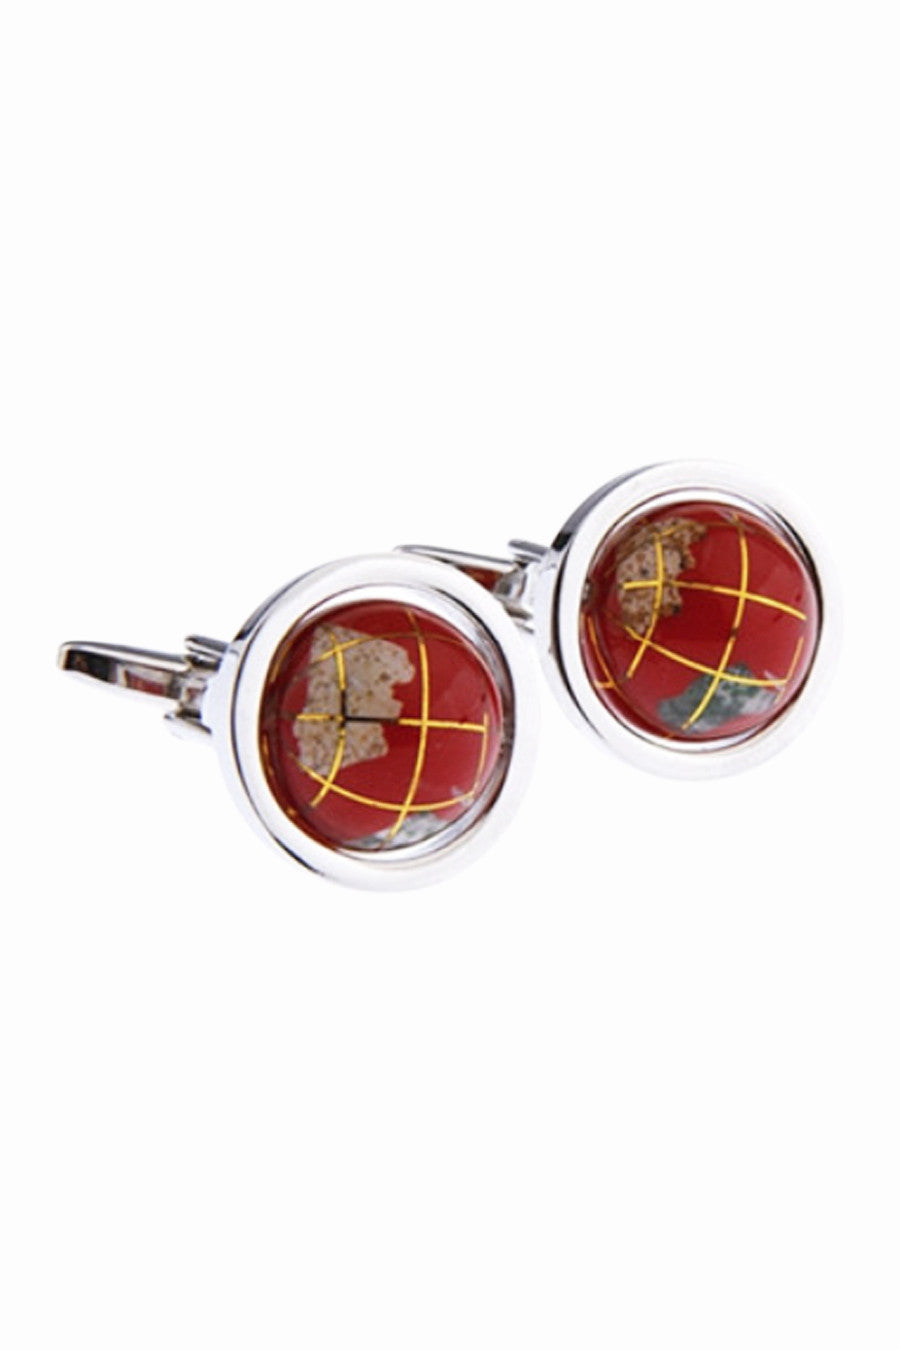 Rotatable Globe Men's Cufflinks In Red